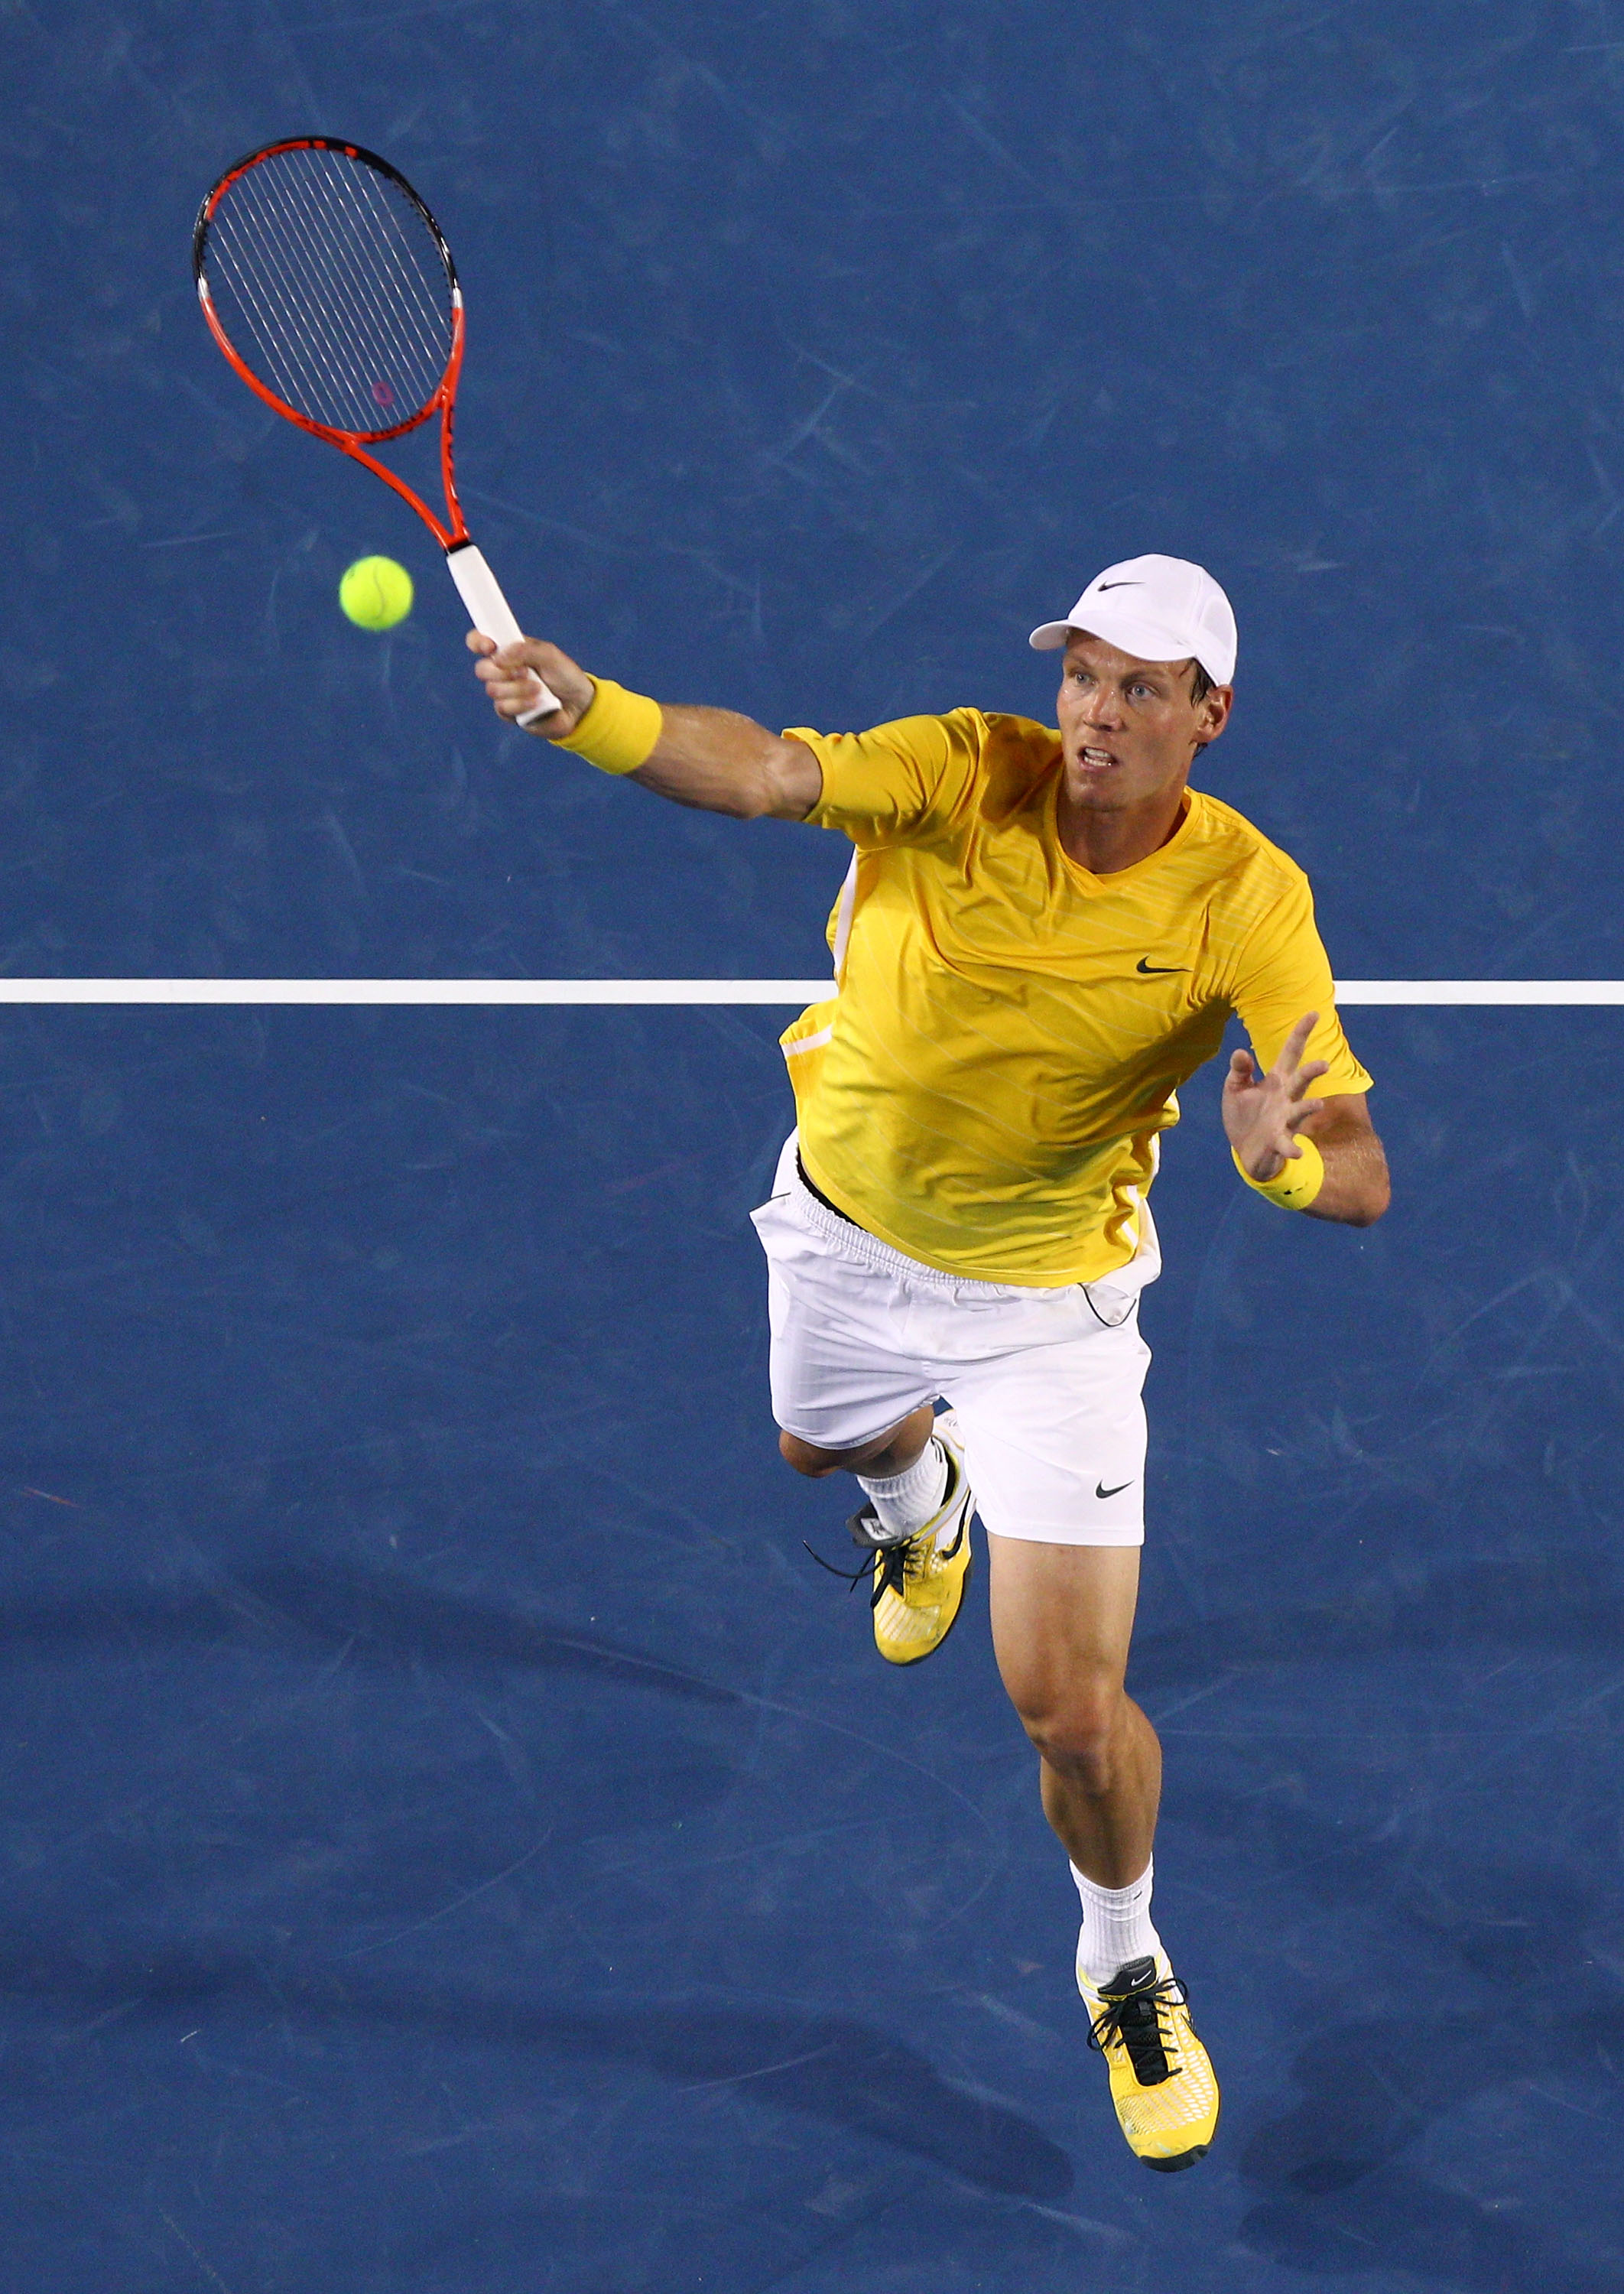 MELBOURNE, AUSTRALIA - JANUARY 25:  Tomas Berdych of the Czech Republic plays a forehand in his quarterfinal match against Novak Djokovic of Serbia during day nine of the 2011 Australian Open at Melbourne Park on January 25, 2011 in Melbourne, Australia.